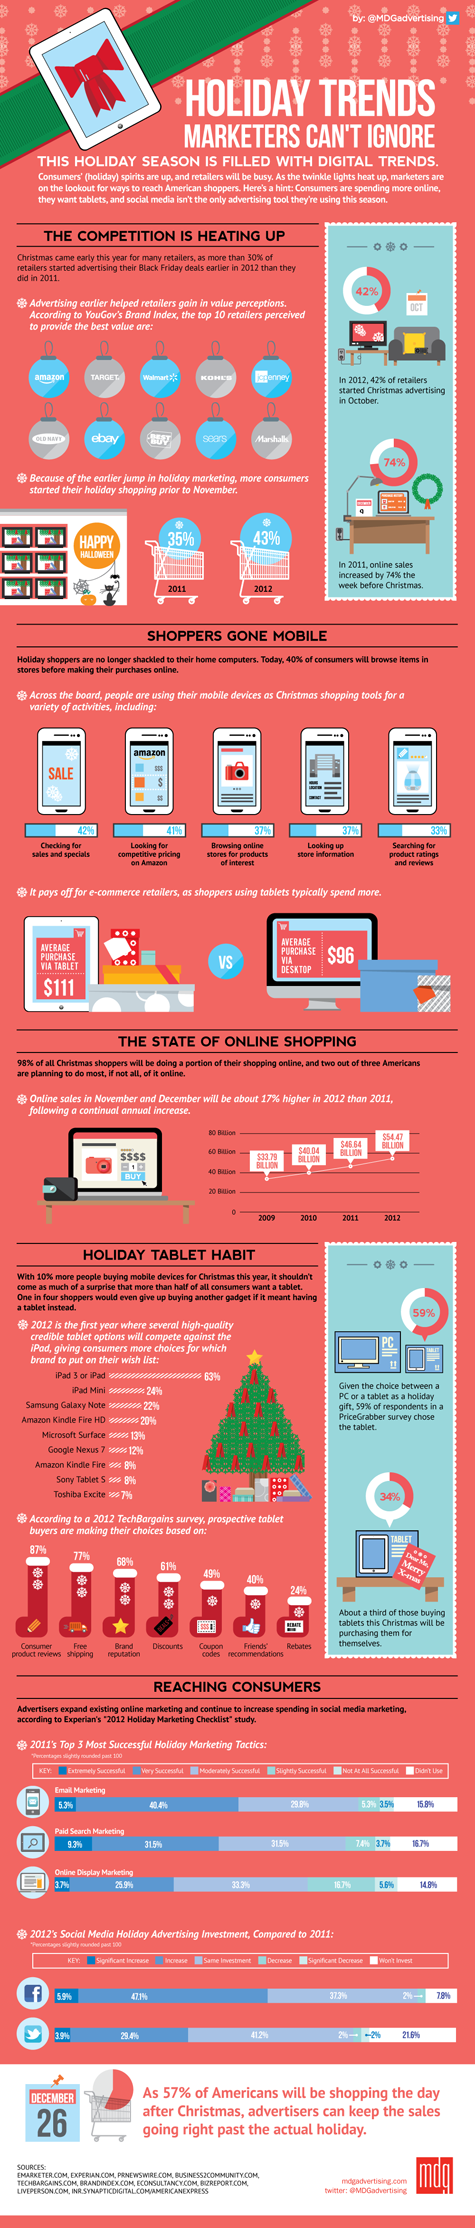 Holiday Trends Marketers Can't Ignore - Full Infographic